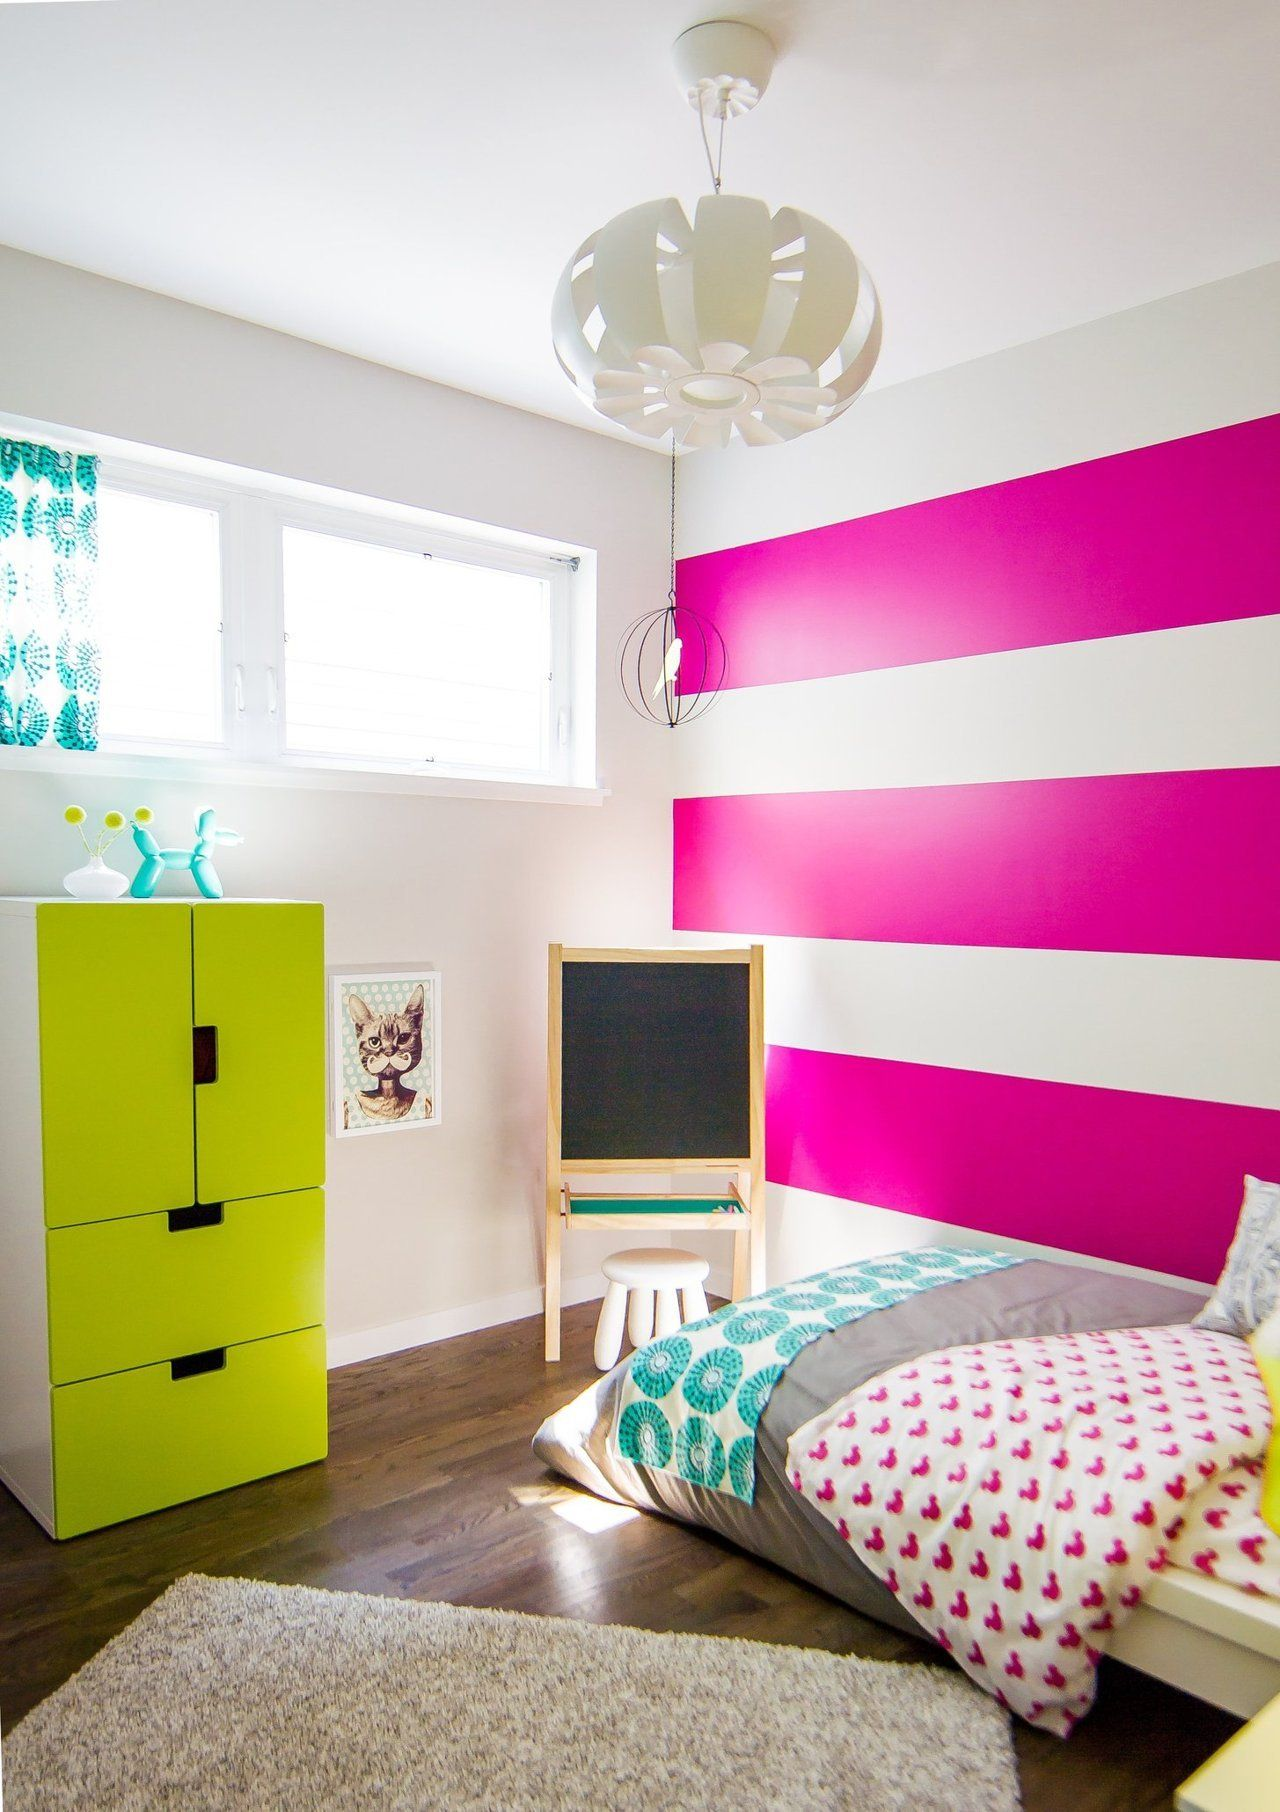 Striking Fuchsia Bordering On Neon Pink Accent Wall In